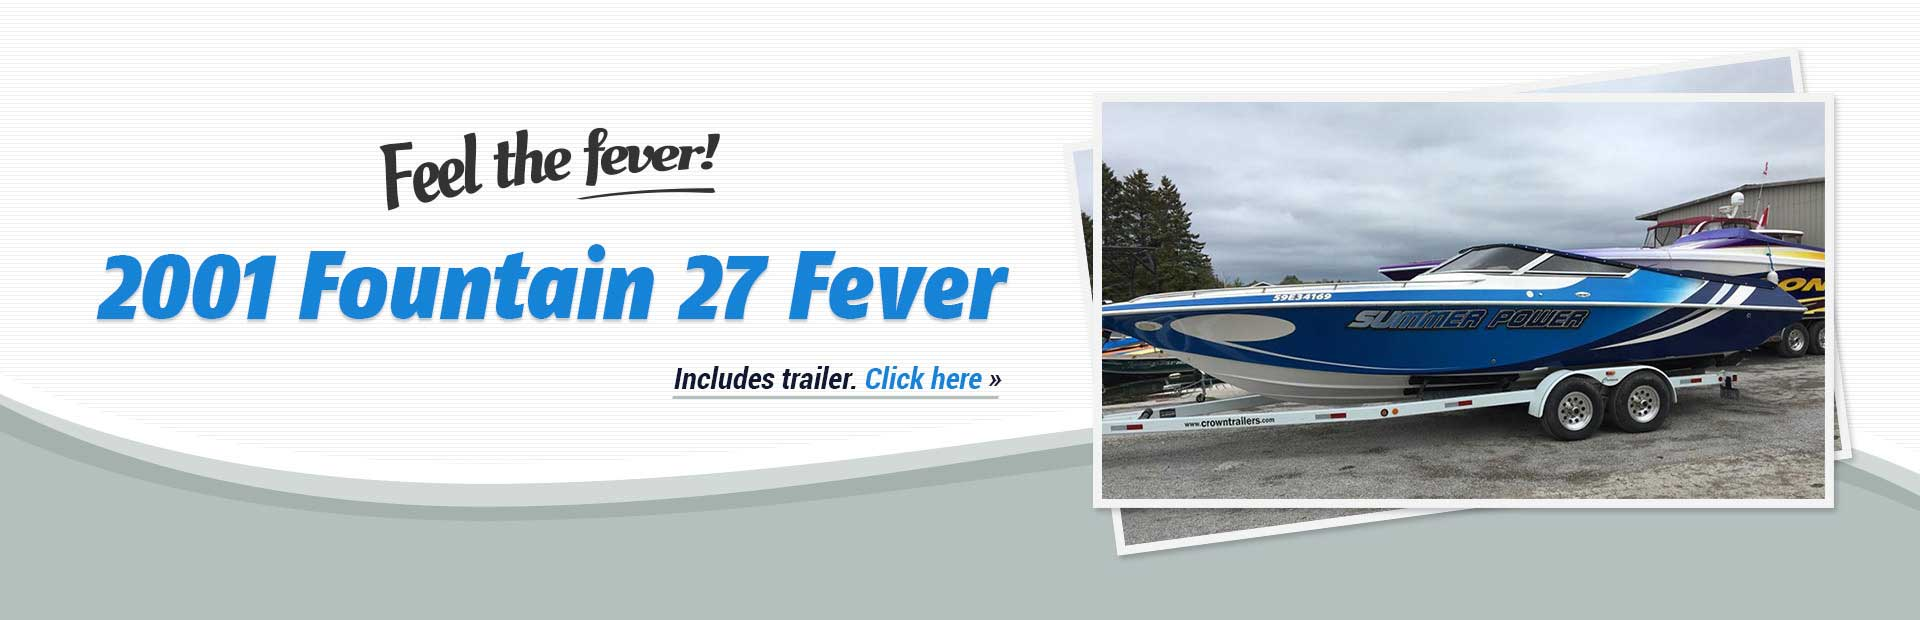 2001 Fountain 27 Fever: Click here to view the model.